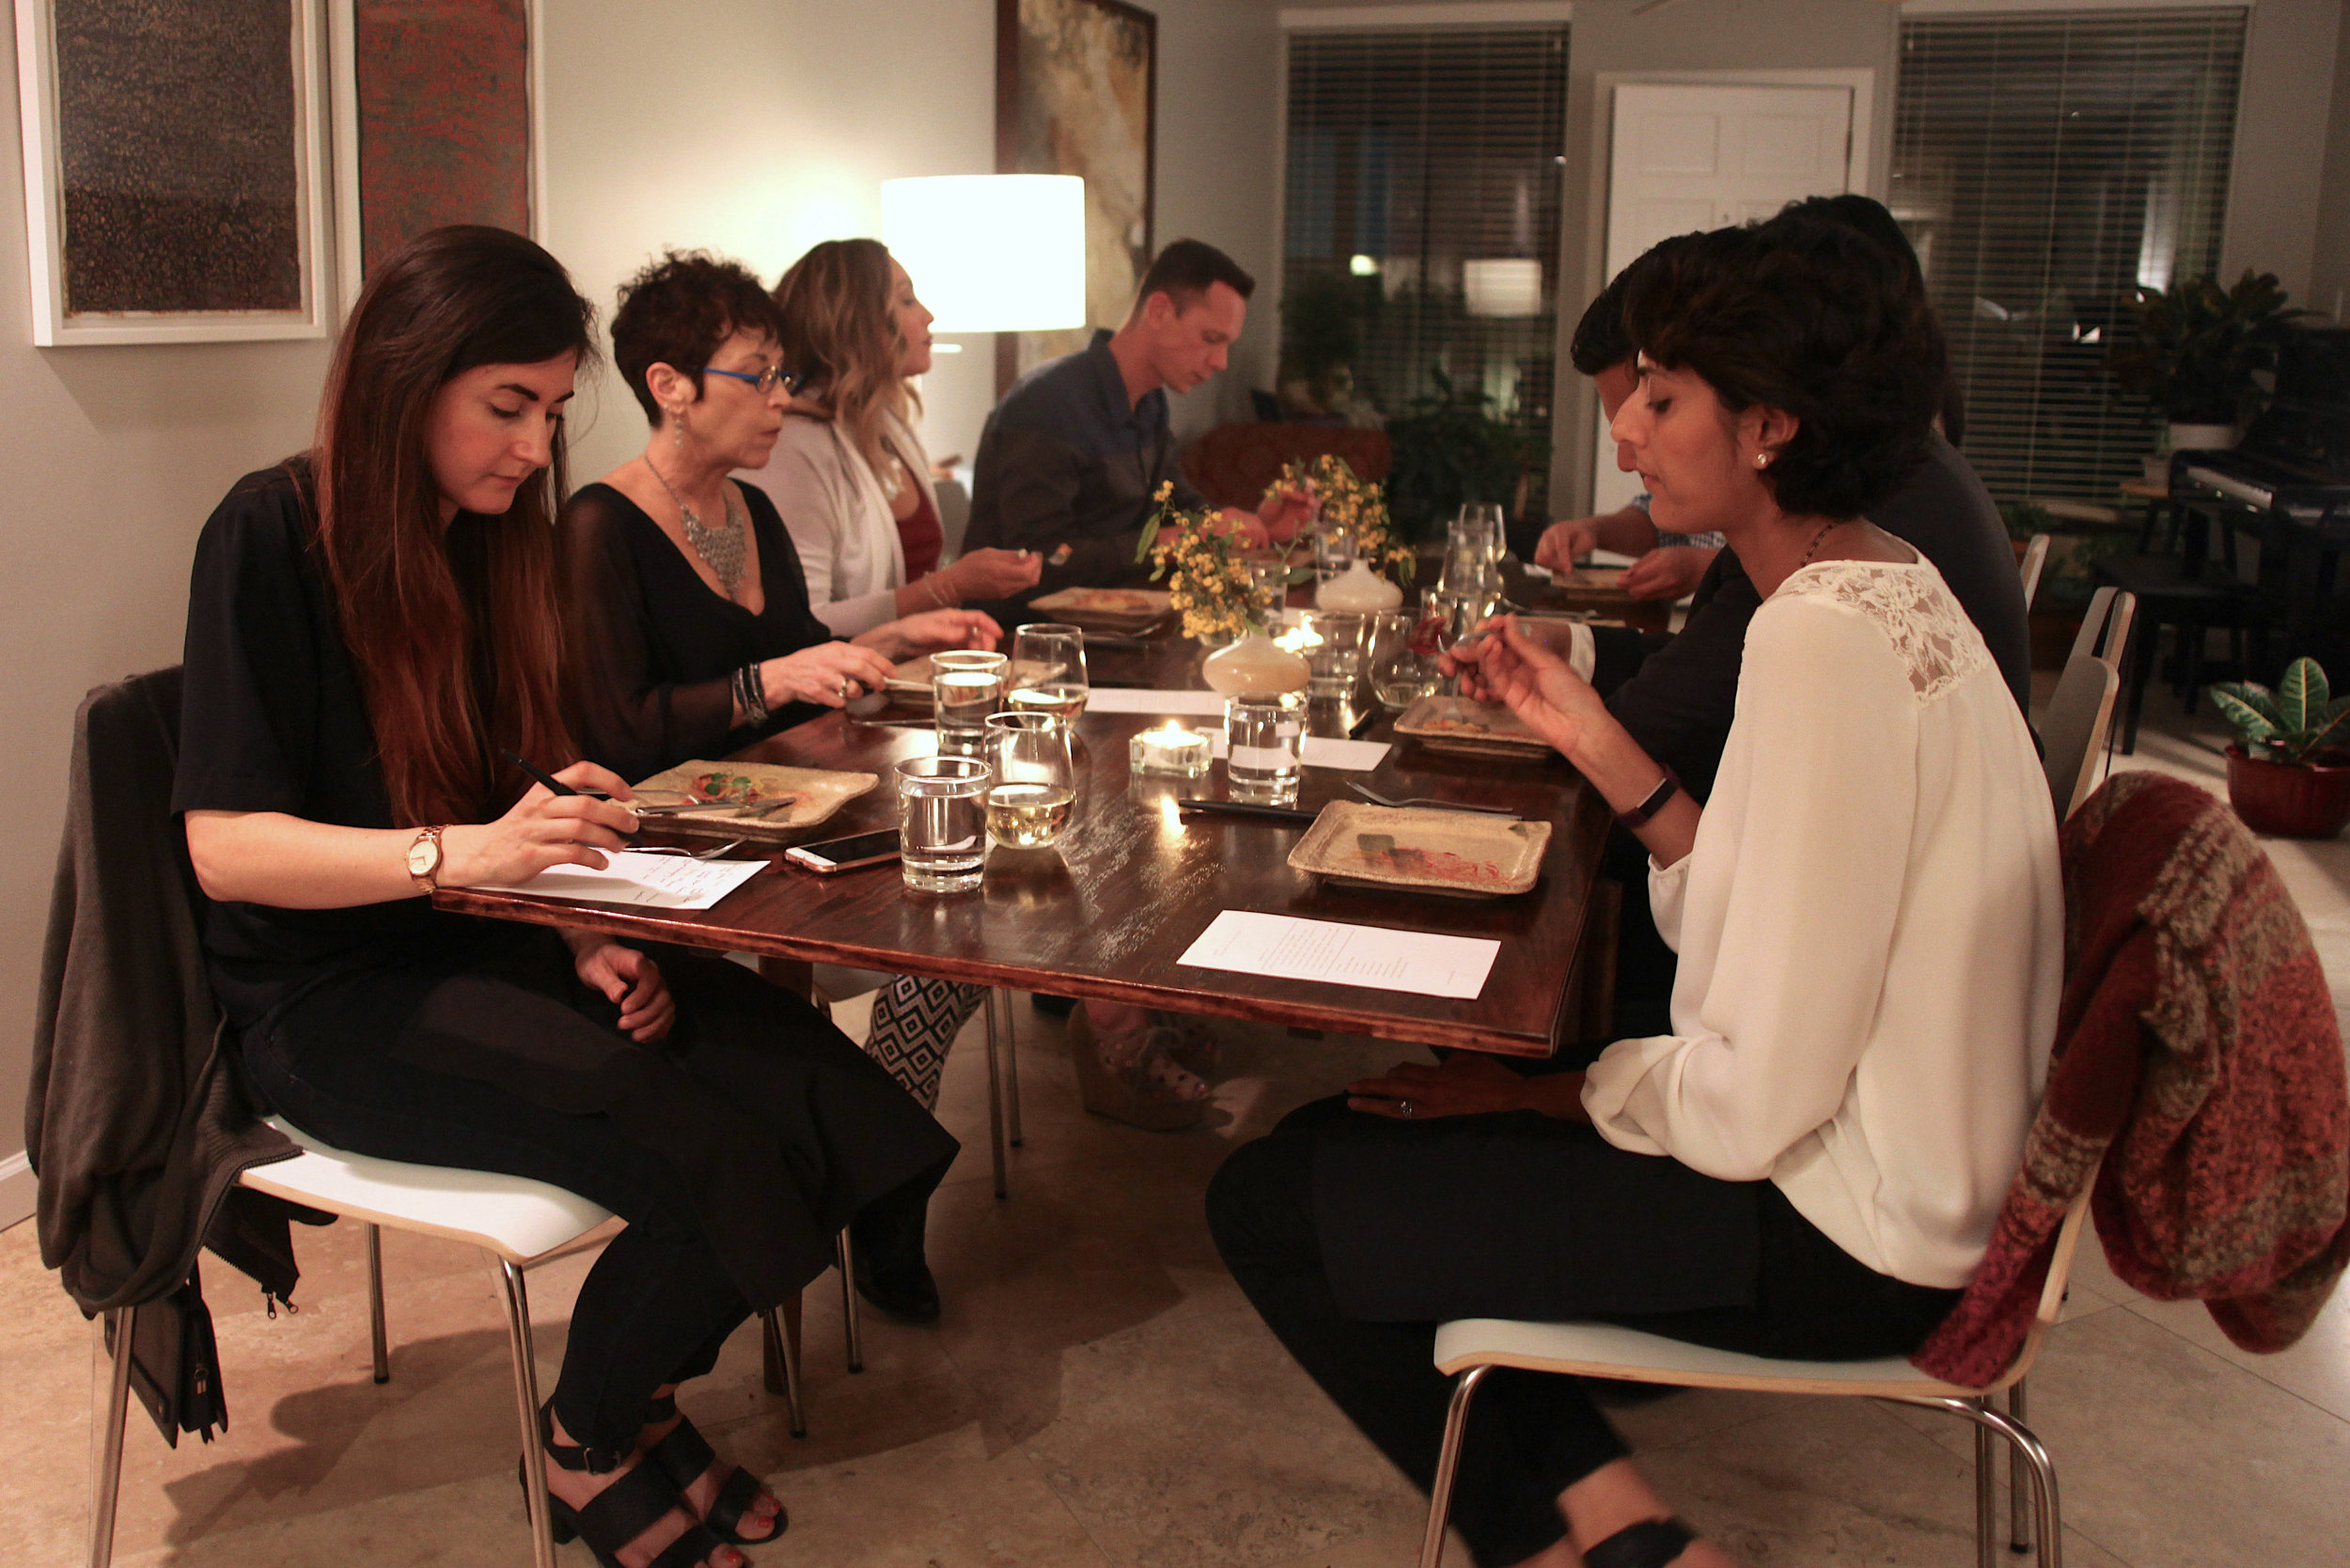 savor dining event in private home, 8 guests